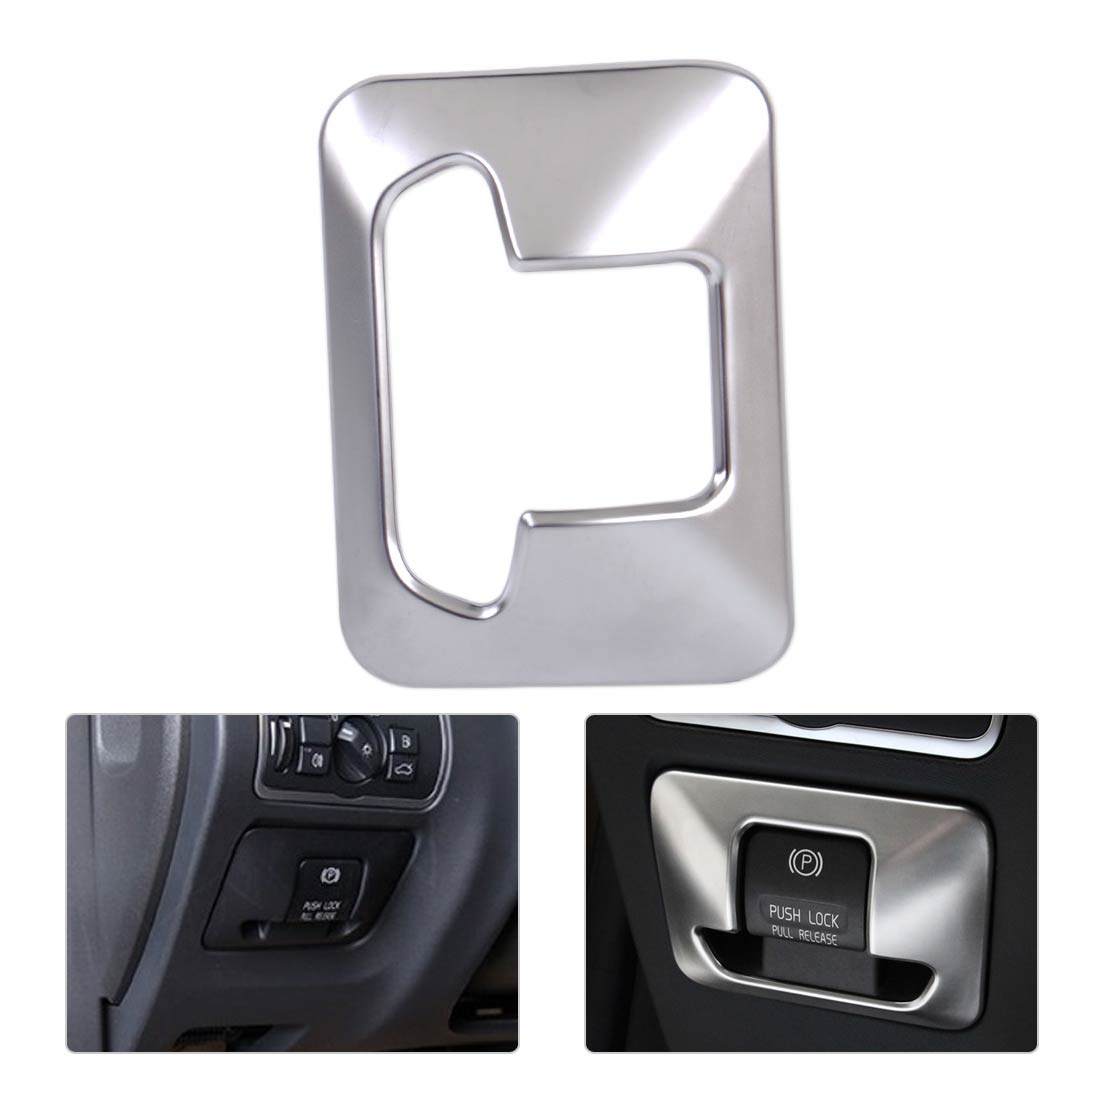 Car Styling Chrome Plated Electronic Handbrake Button Panel Trim Cover fit for Volvo XC60 V60 XC70 S60 S80 2010 - 2013 2014 2015 я учусь читать и писать прописи наклейки